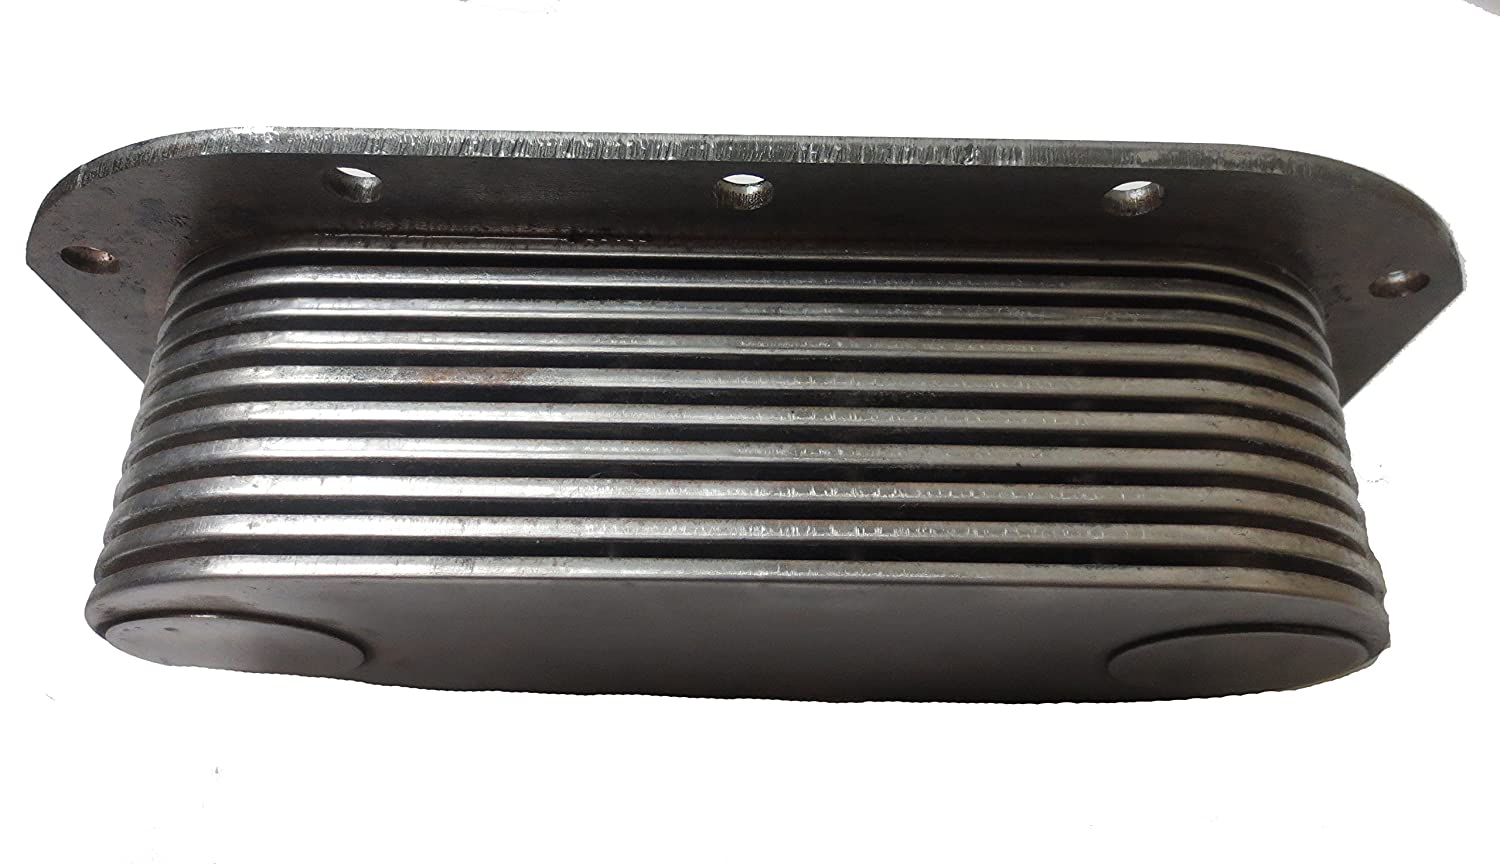 Amazon.com: NEW Replacement 10 plate oil cooler 23522416 for Detroit Diesel Series 50 60 (24049AM): Automotive